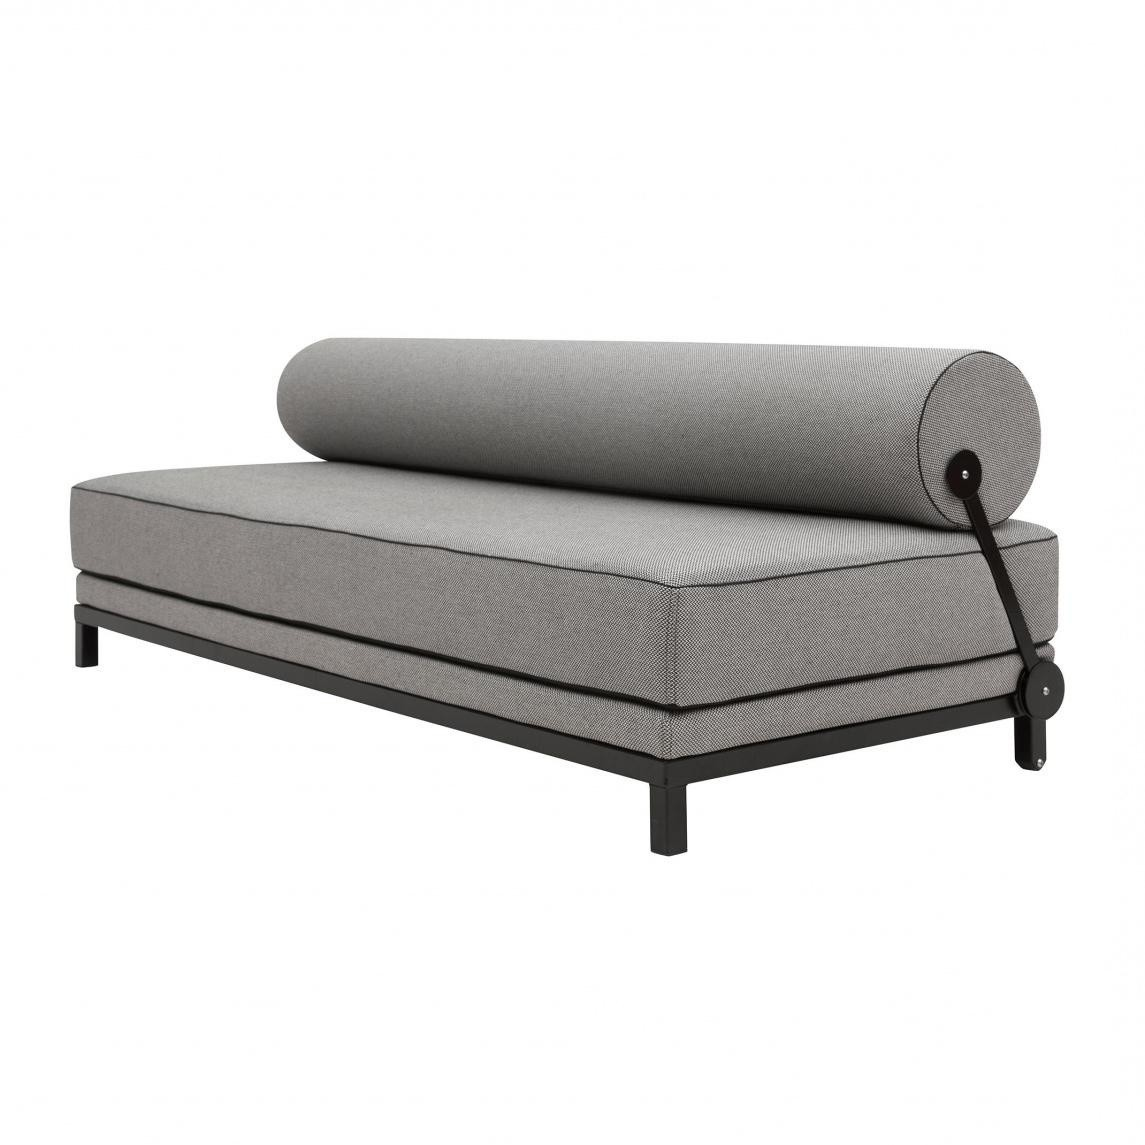 Softline Sleep Day Bed Sofa Black